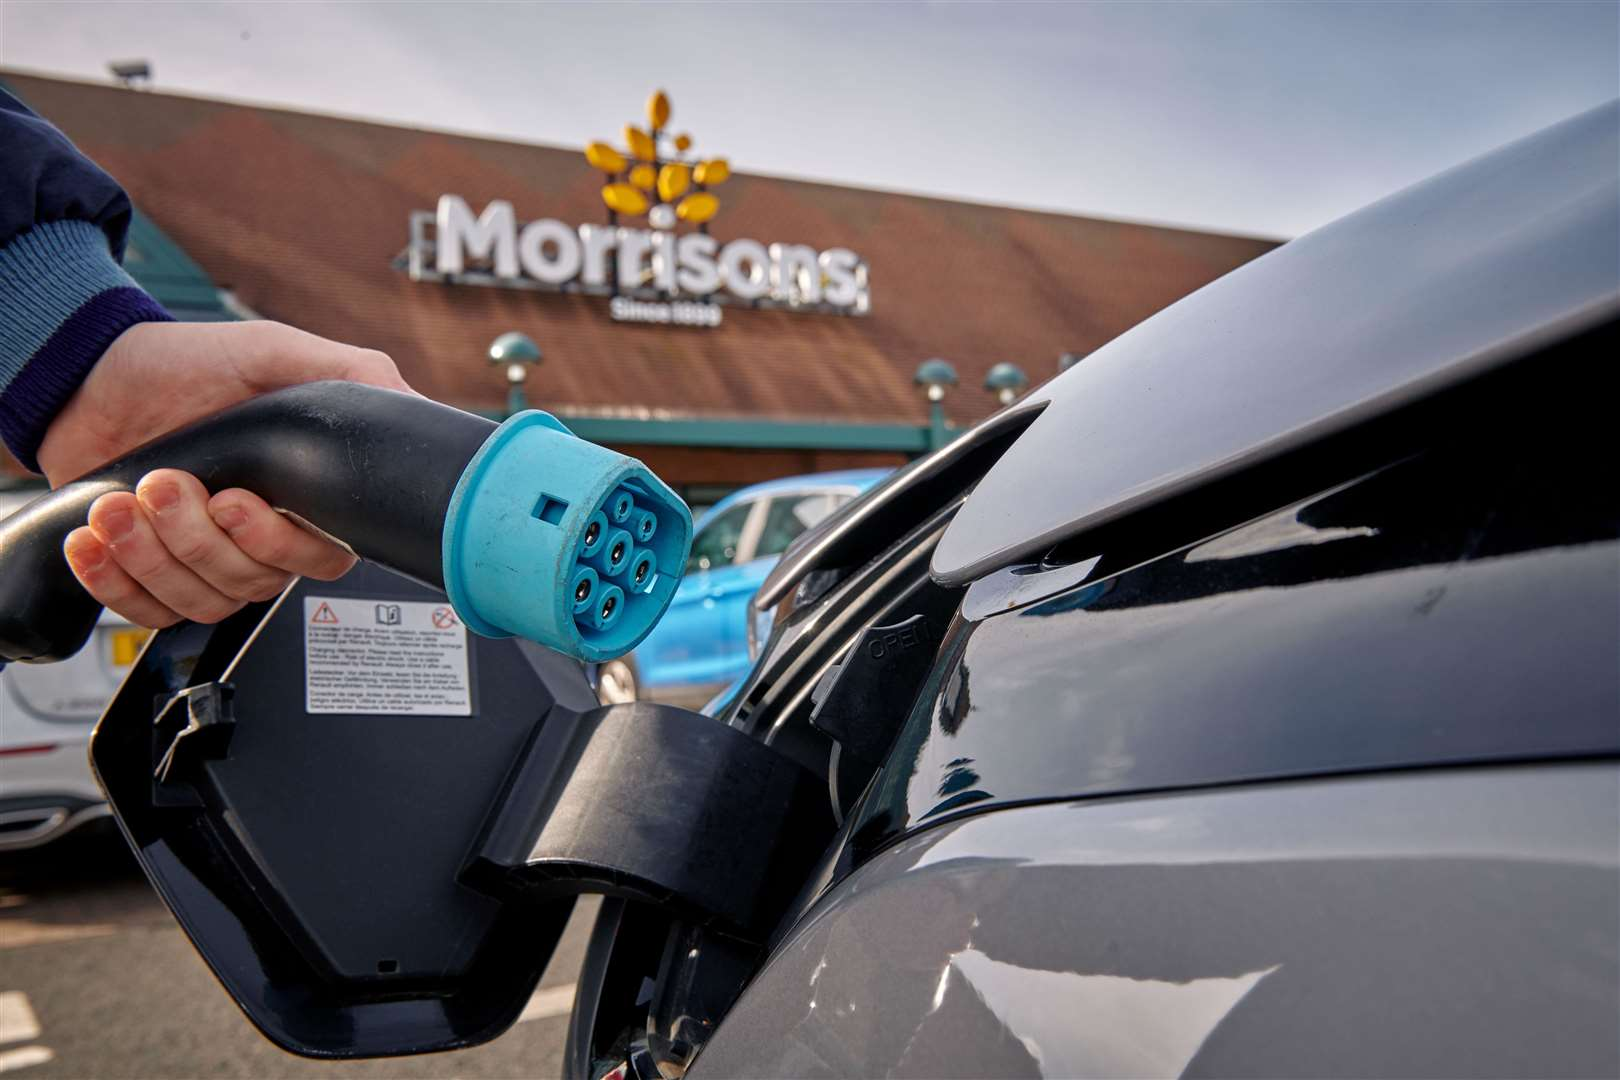 Morrisons says it is building the largest network of rapid chargers